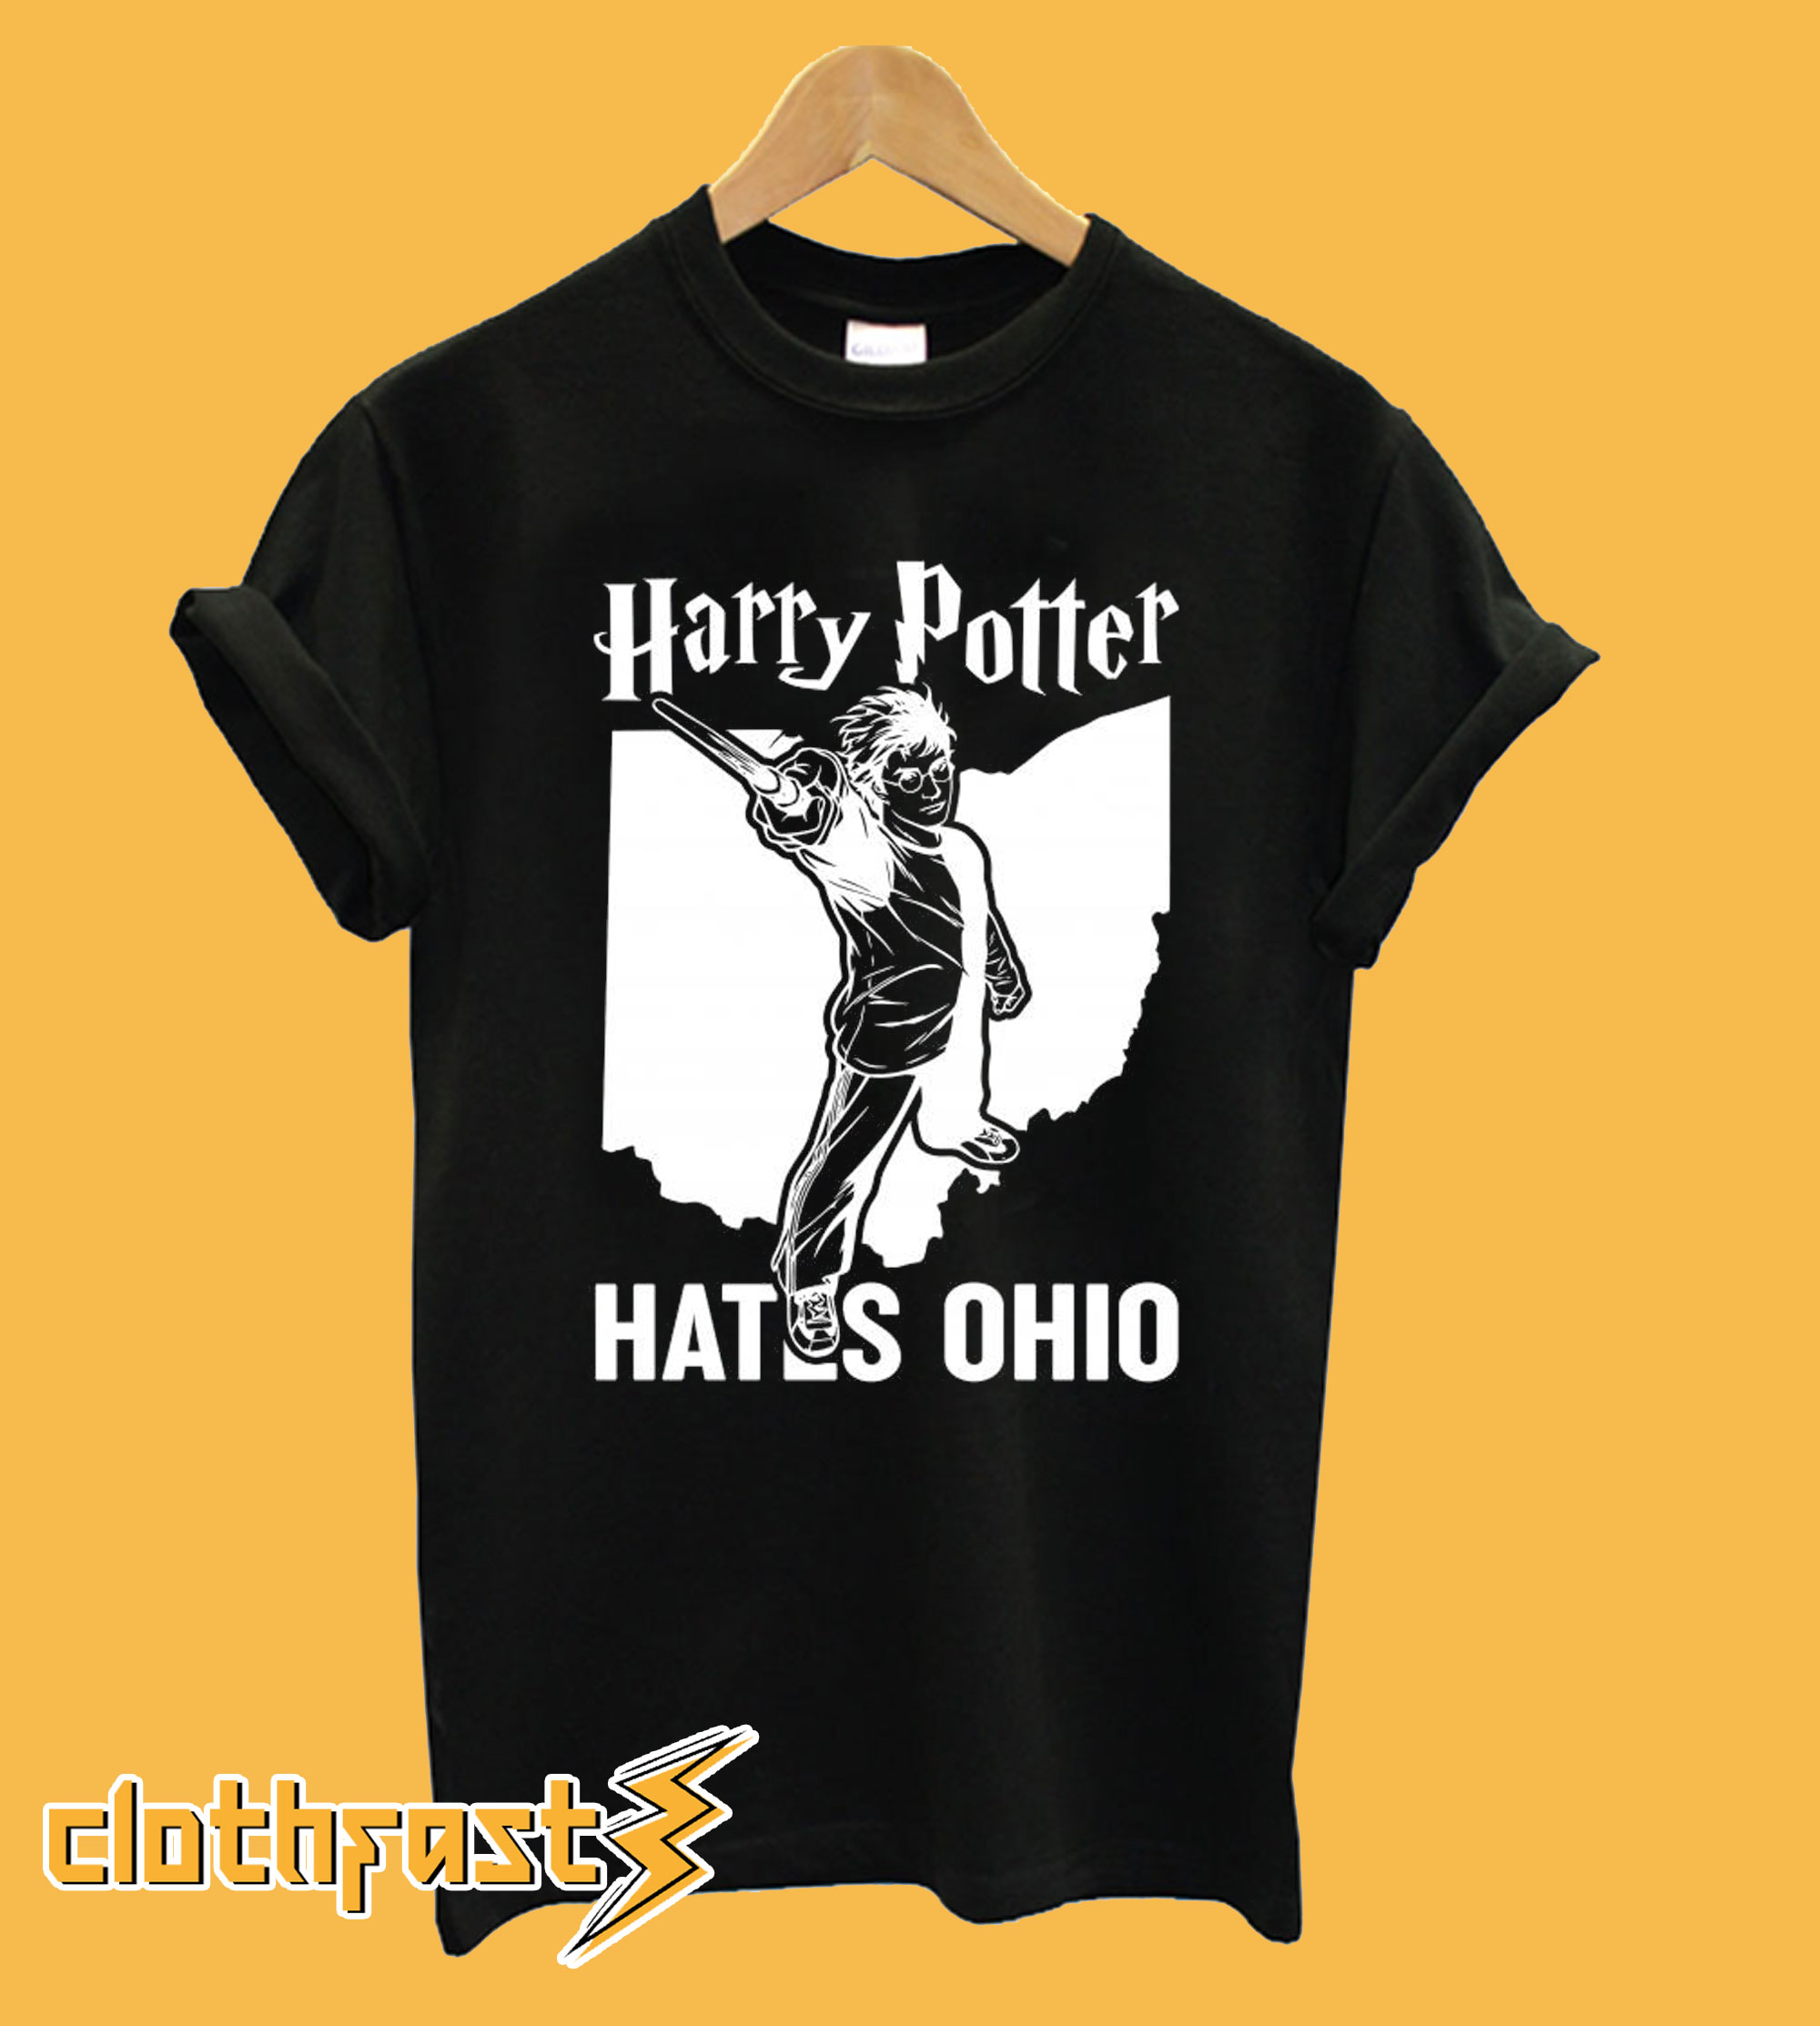 Harry Potter Hates Ohio T shirt